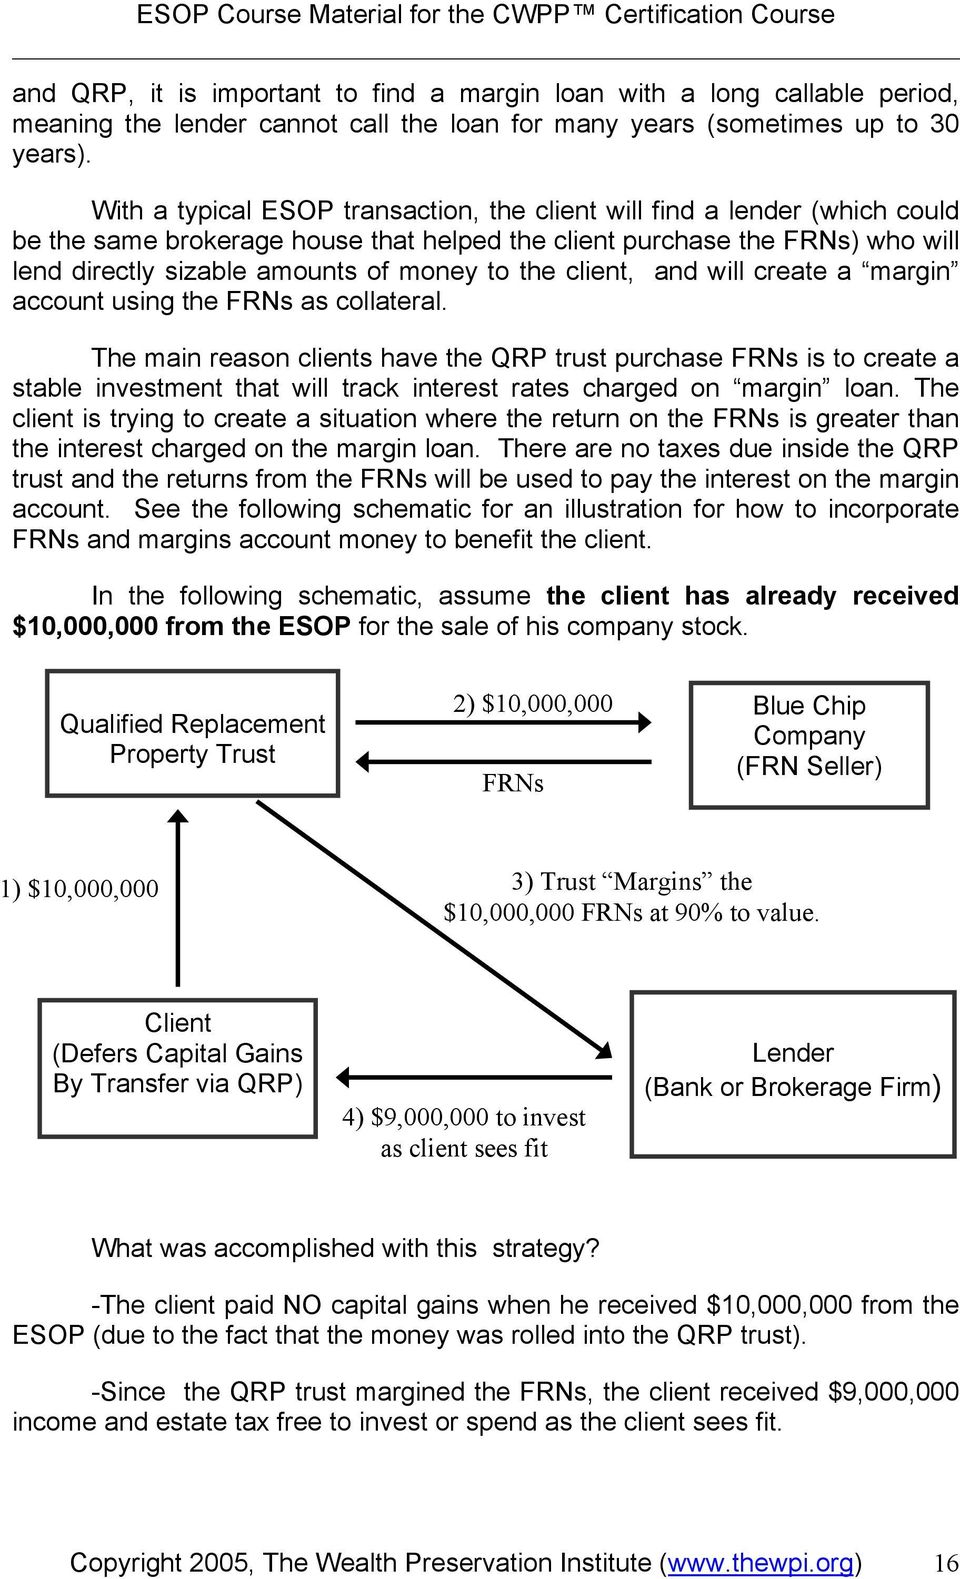 the client, and will create a margin account using the FRNs as collateral.